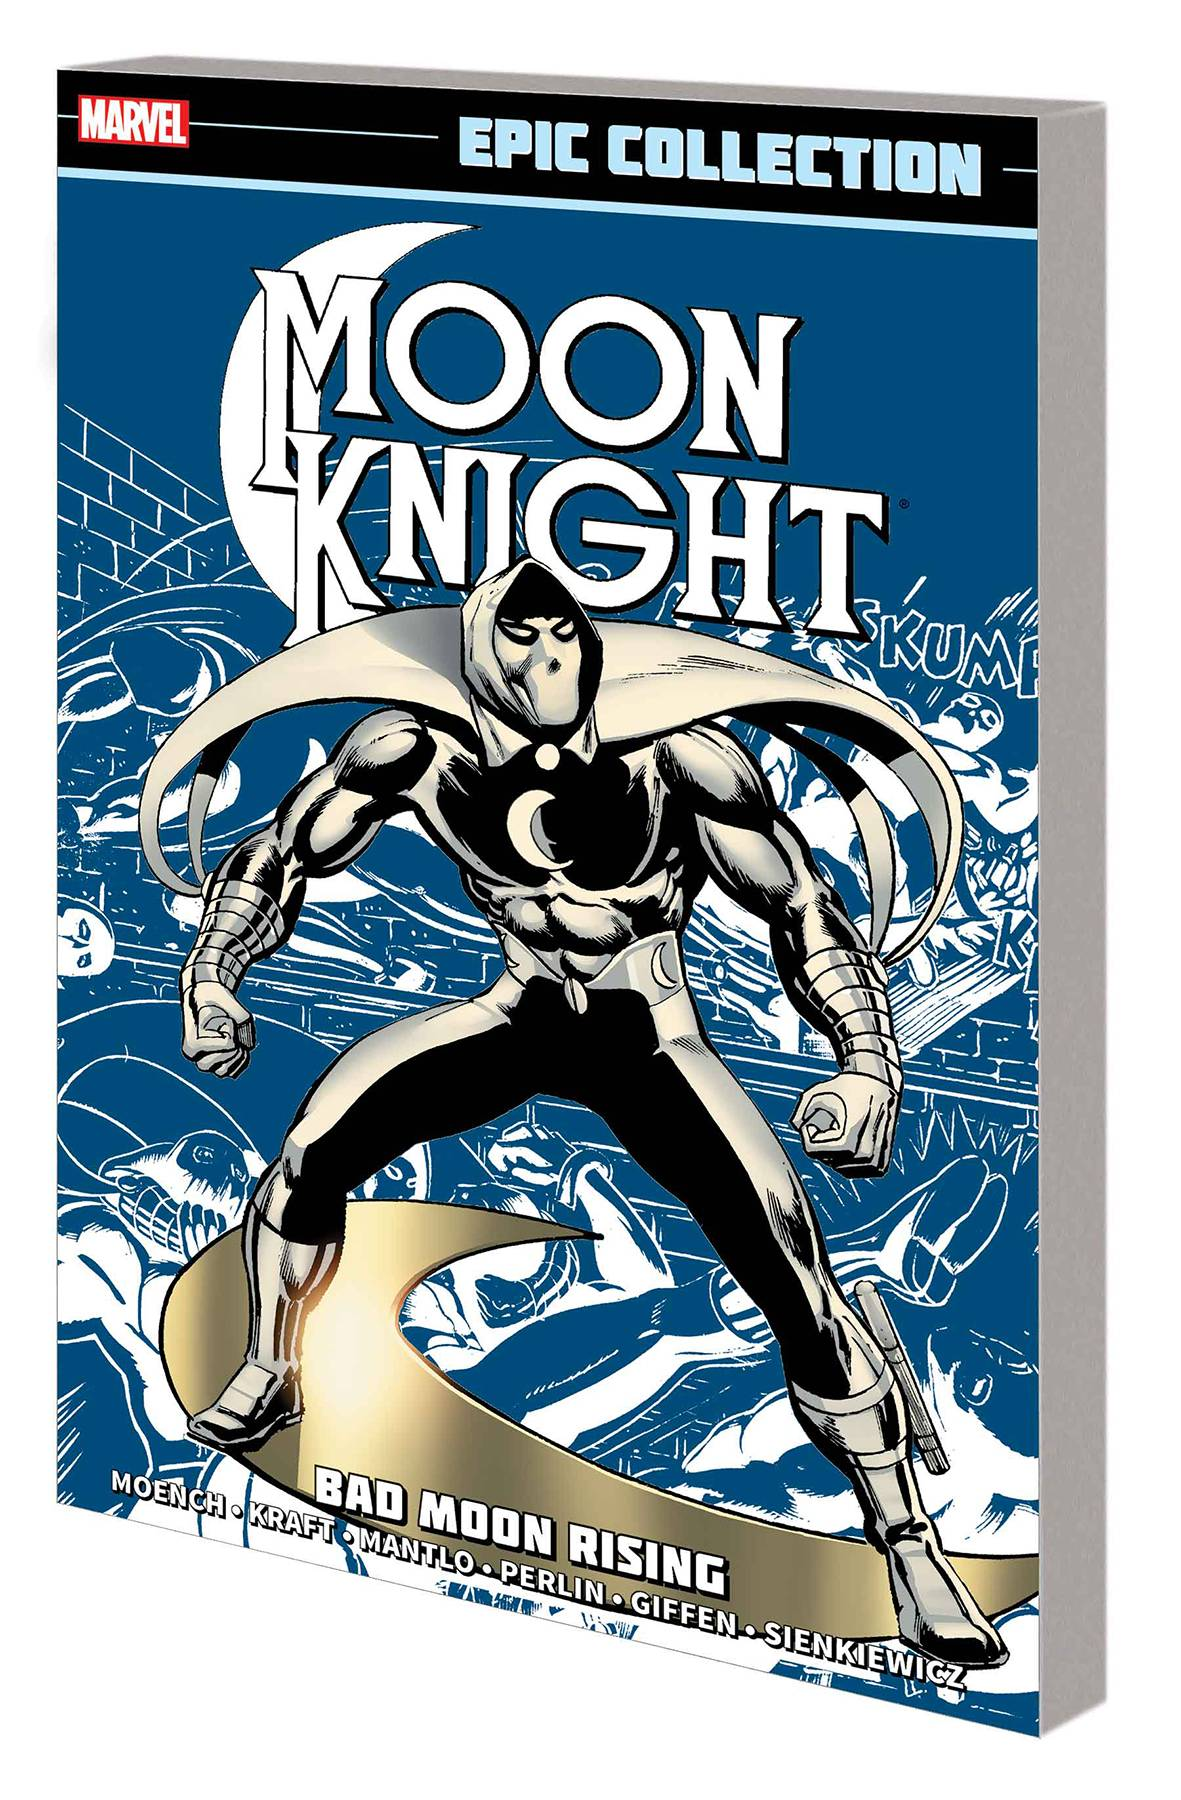 MOON KNIGHT EPIC COLLECTION TP BAD MOON RISING NEW PTG